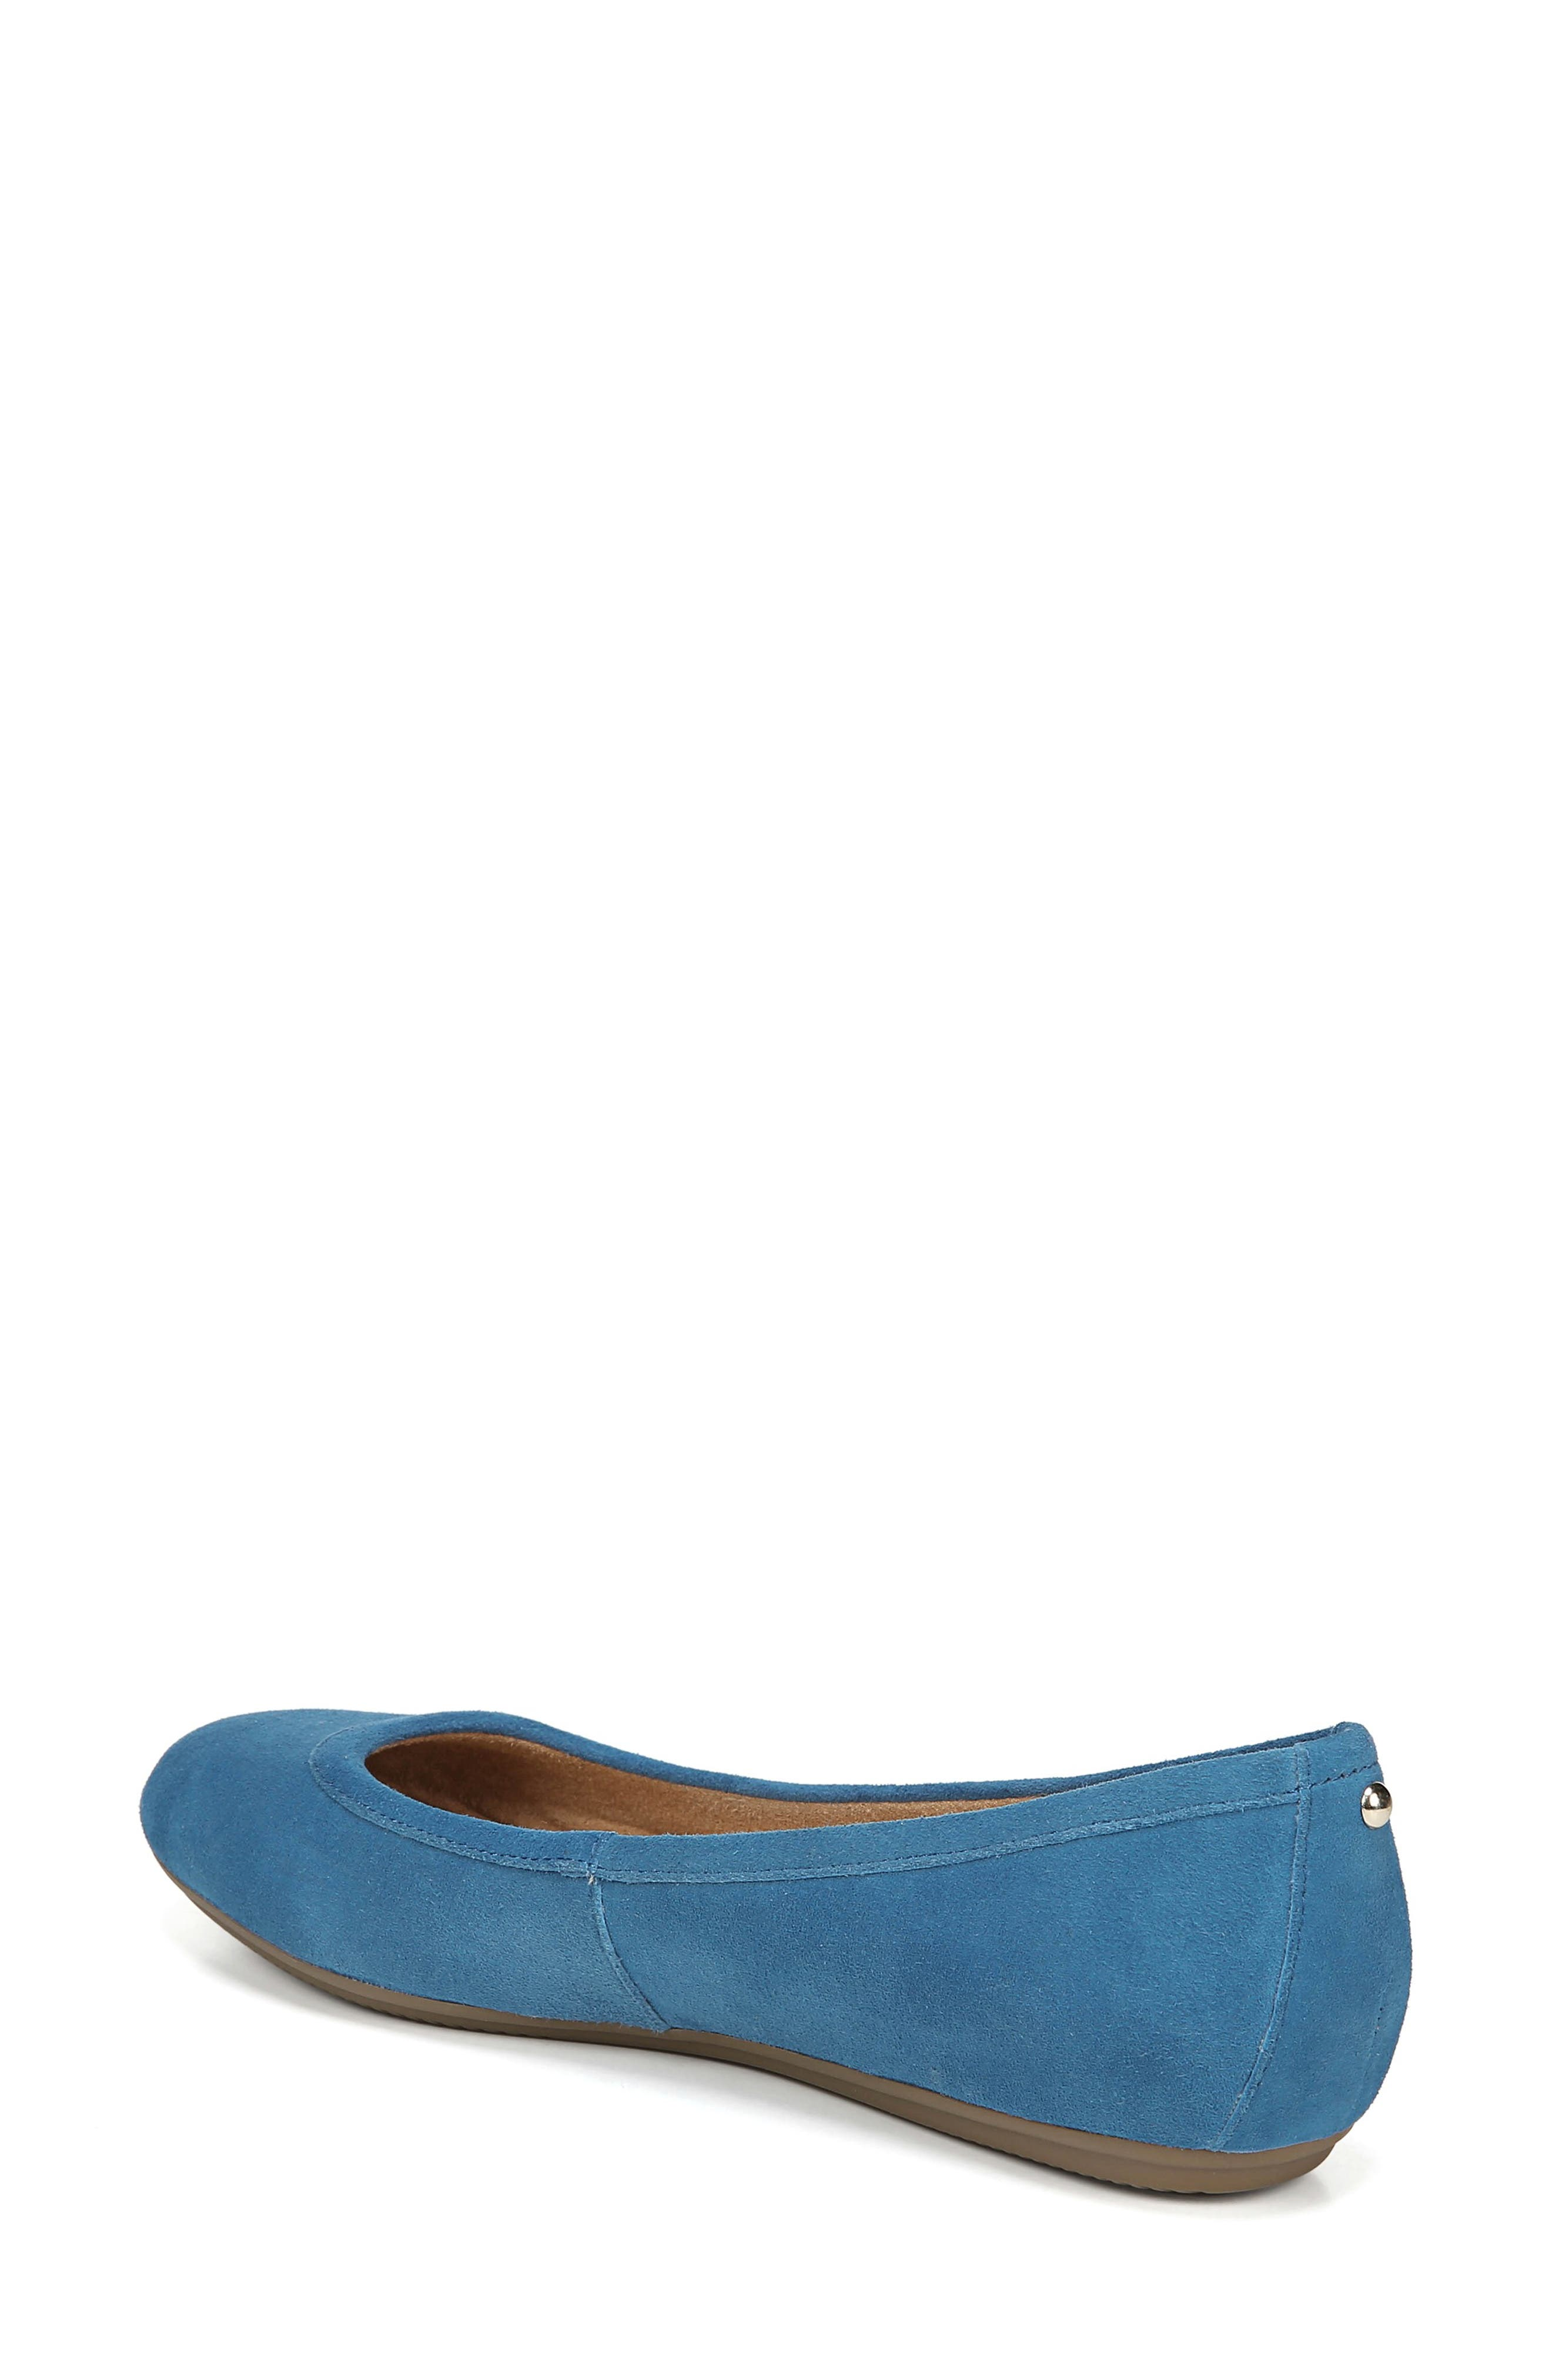 Brittany Flat,                             Alternate thumbnail 2, color,                             ADMIRAL BLUE LEATHER